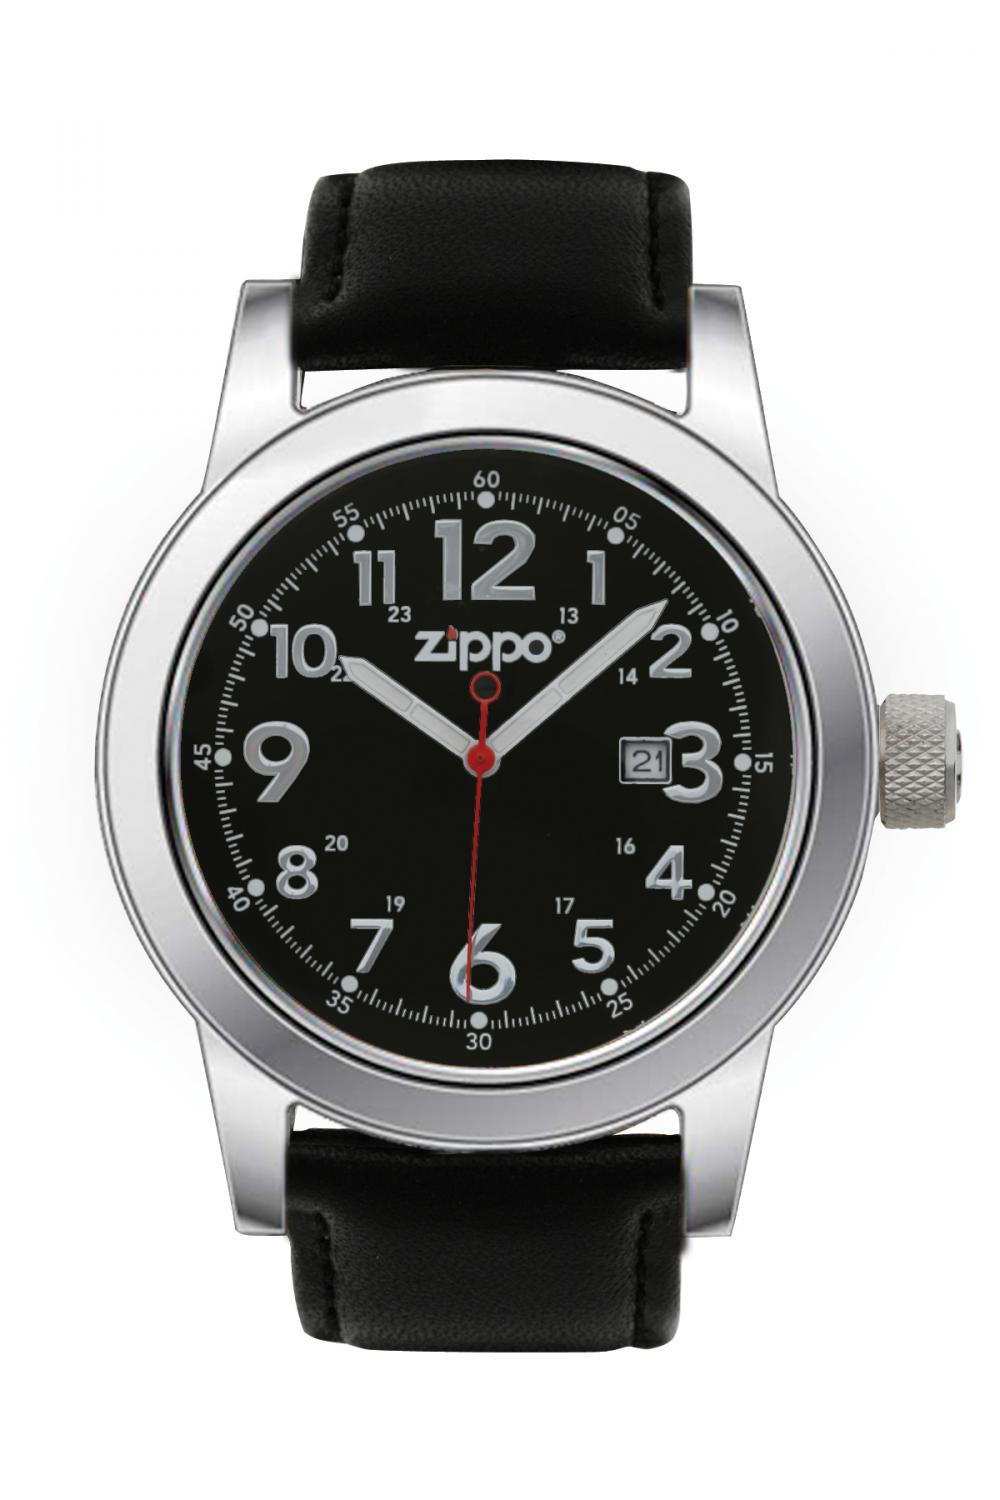 Zippo Watch Black Face / Black Leather Band